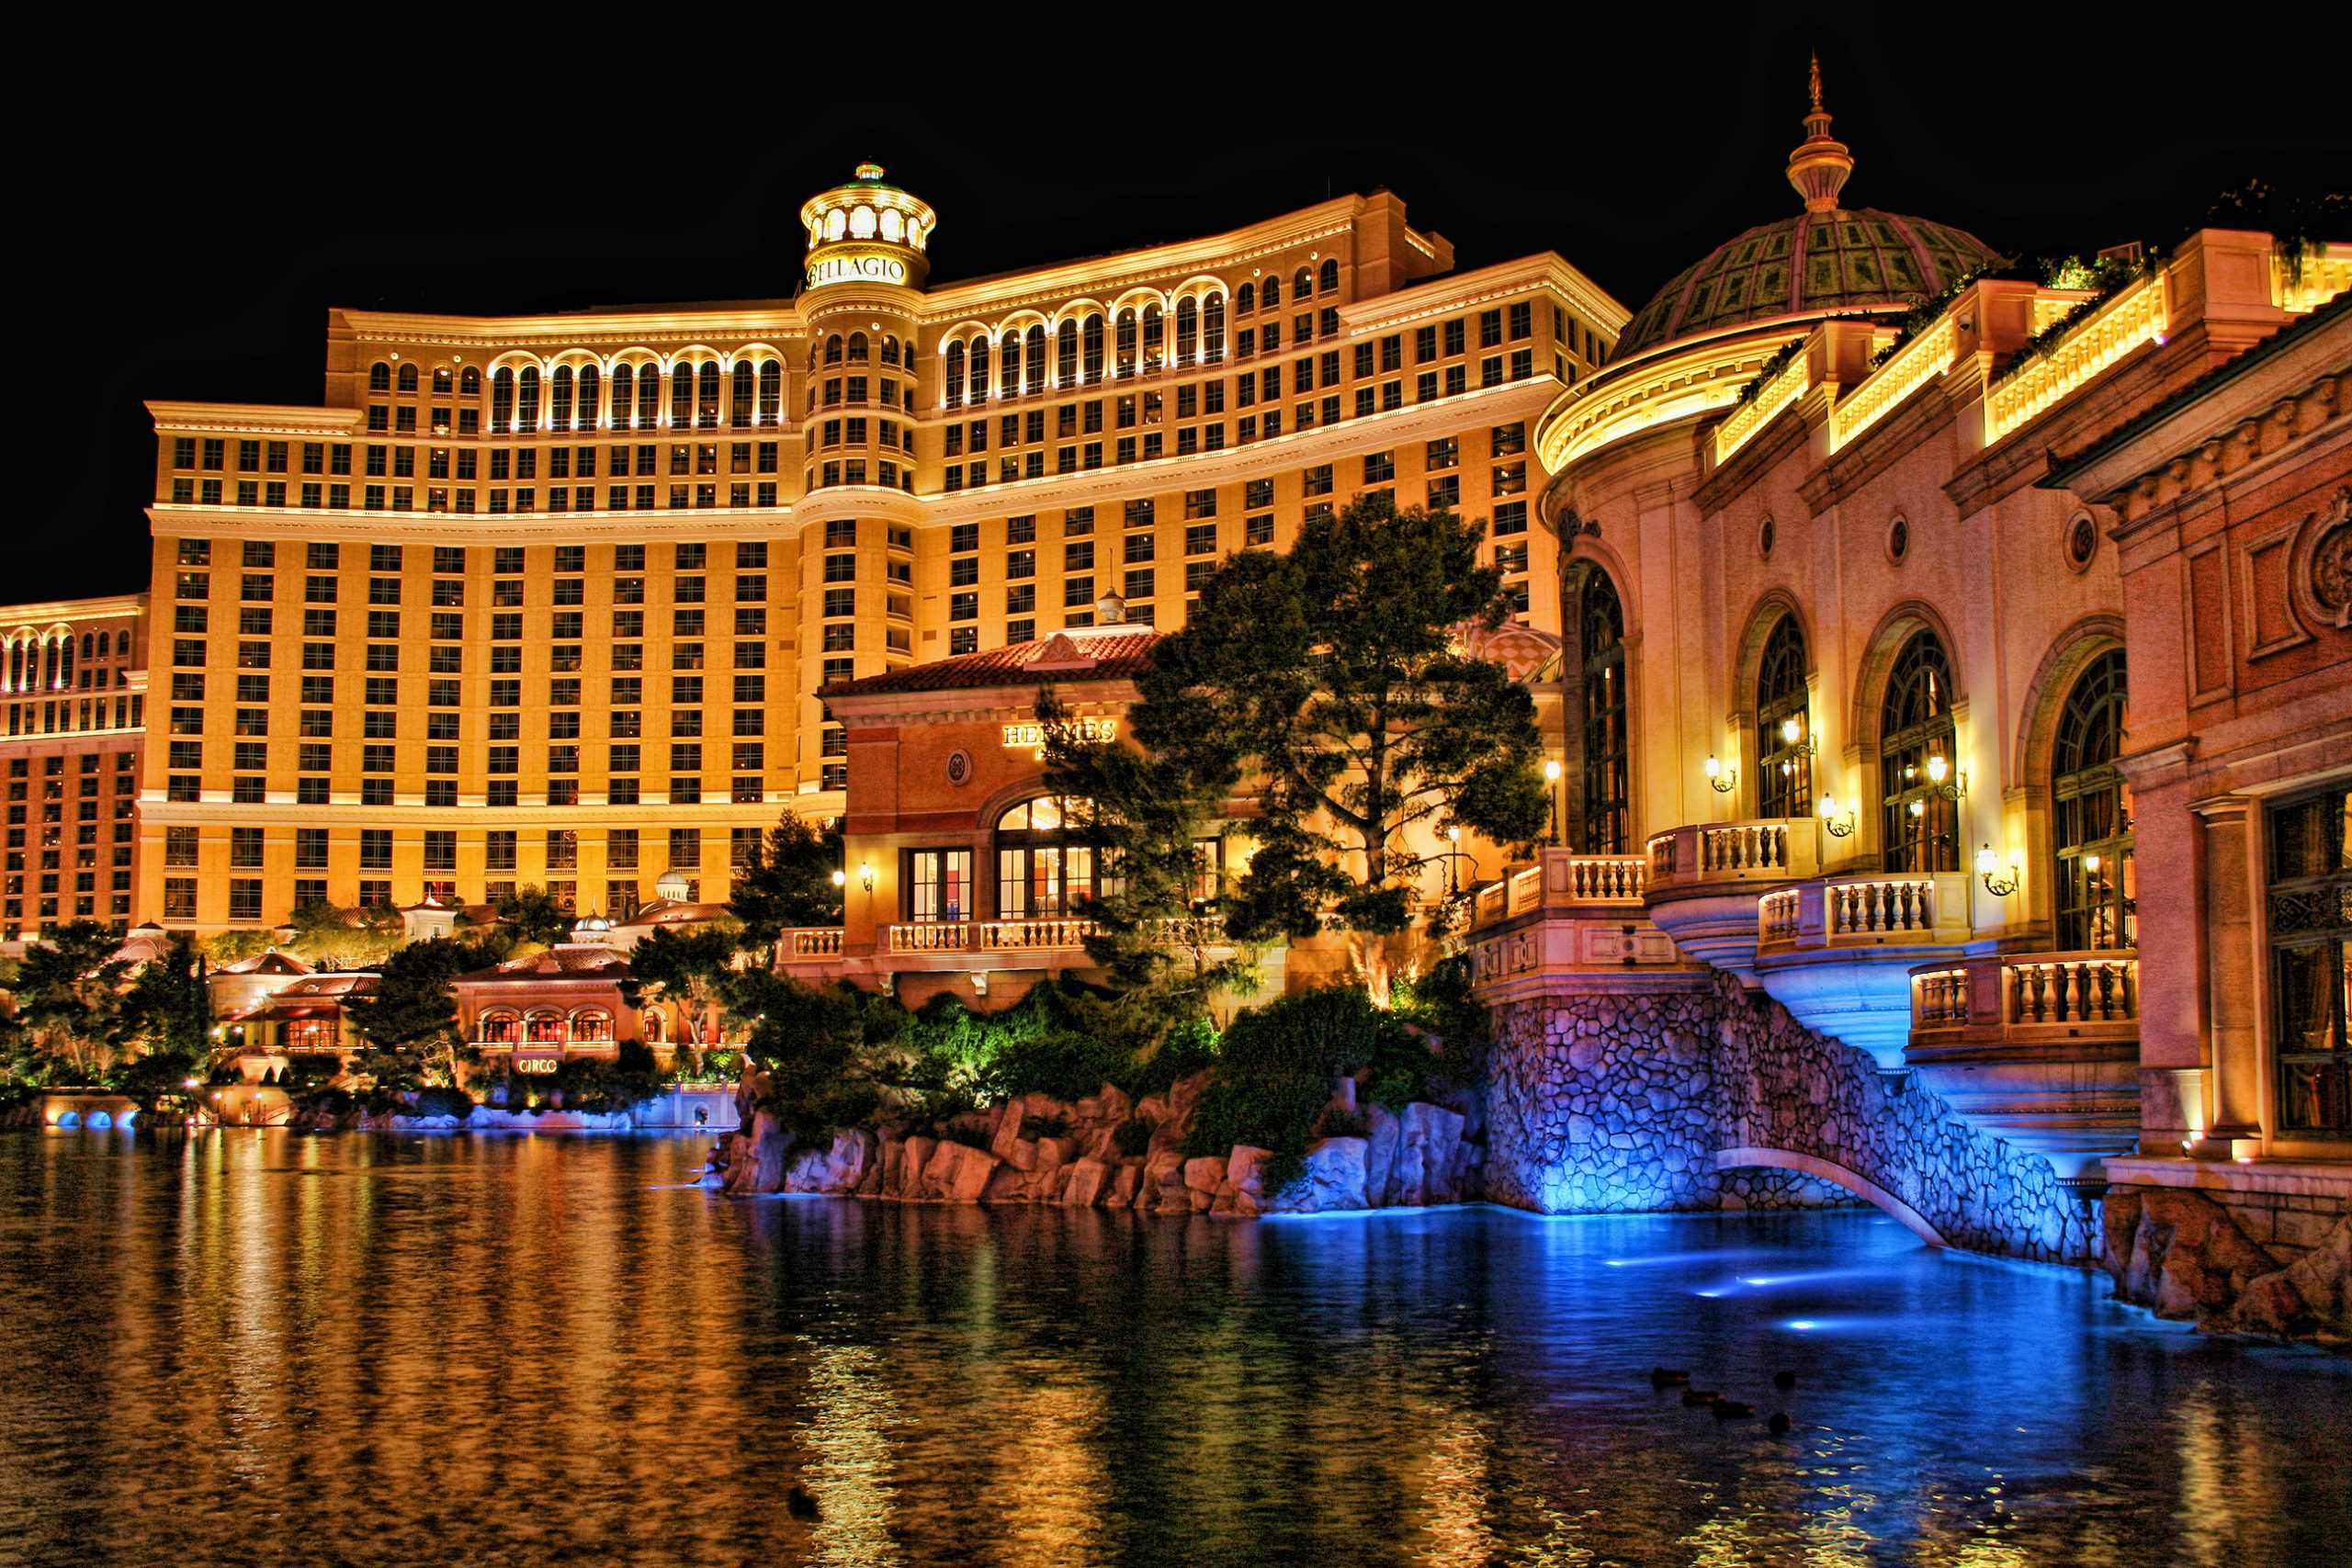 Bellagio Hotel and Casino - Luxury Hotels To Stay In Las Vegas